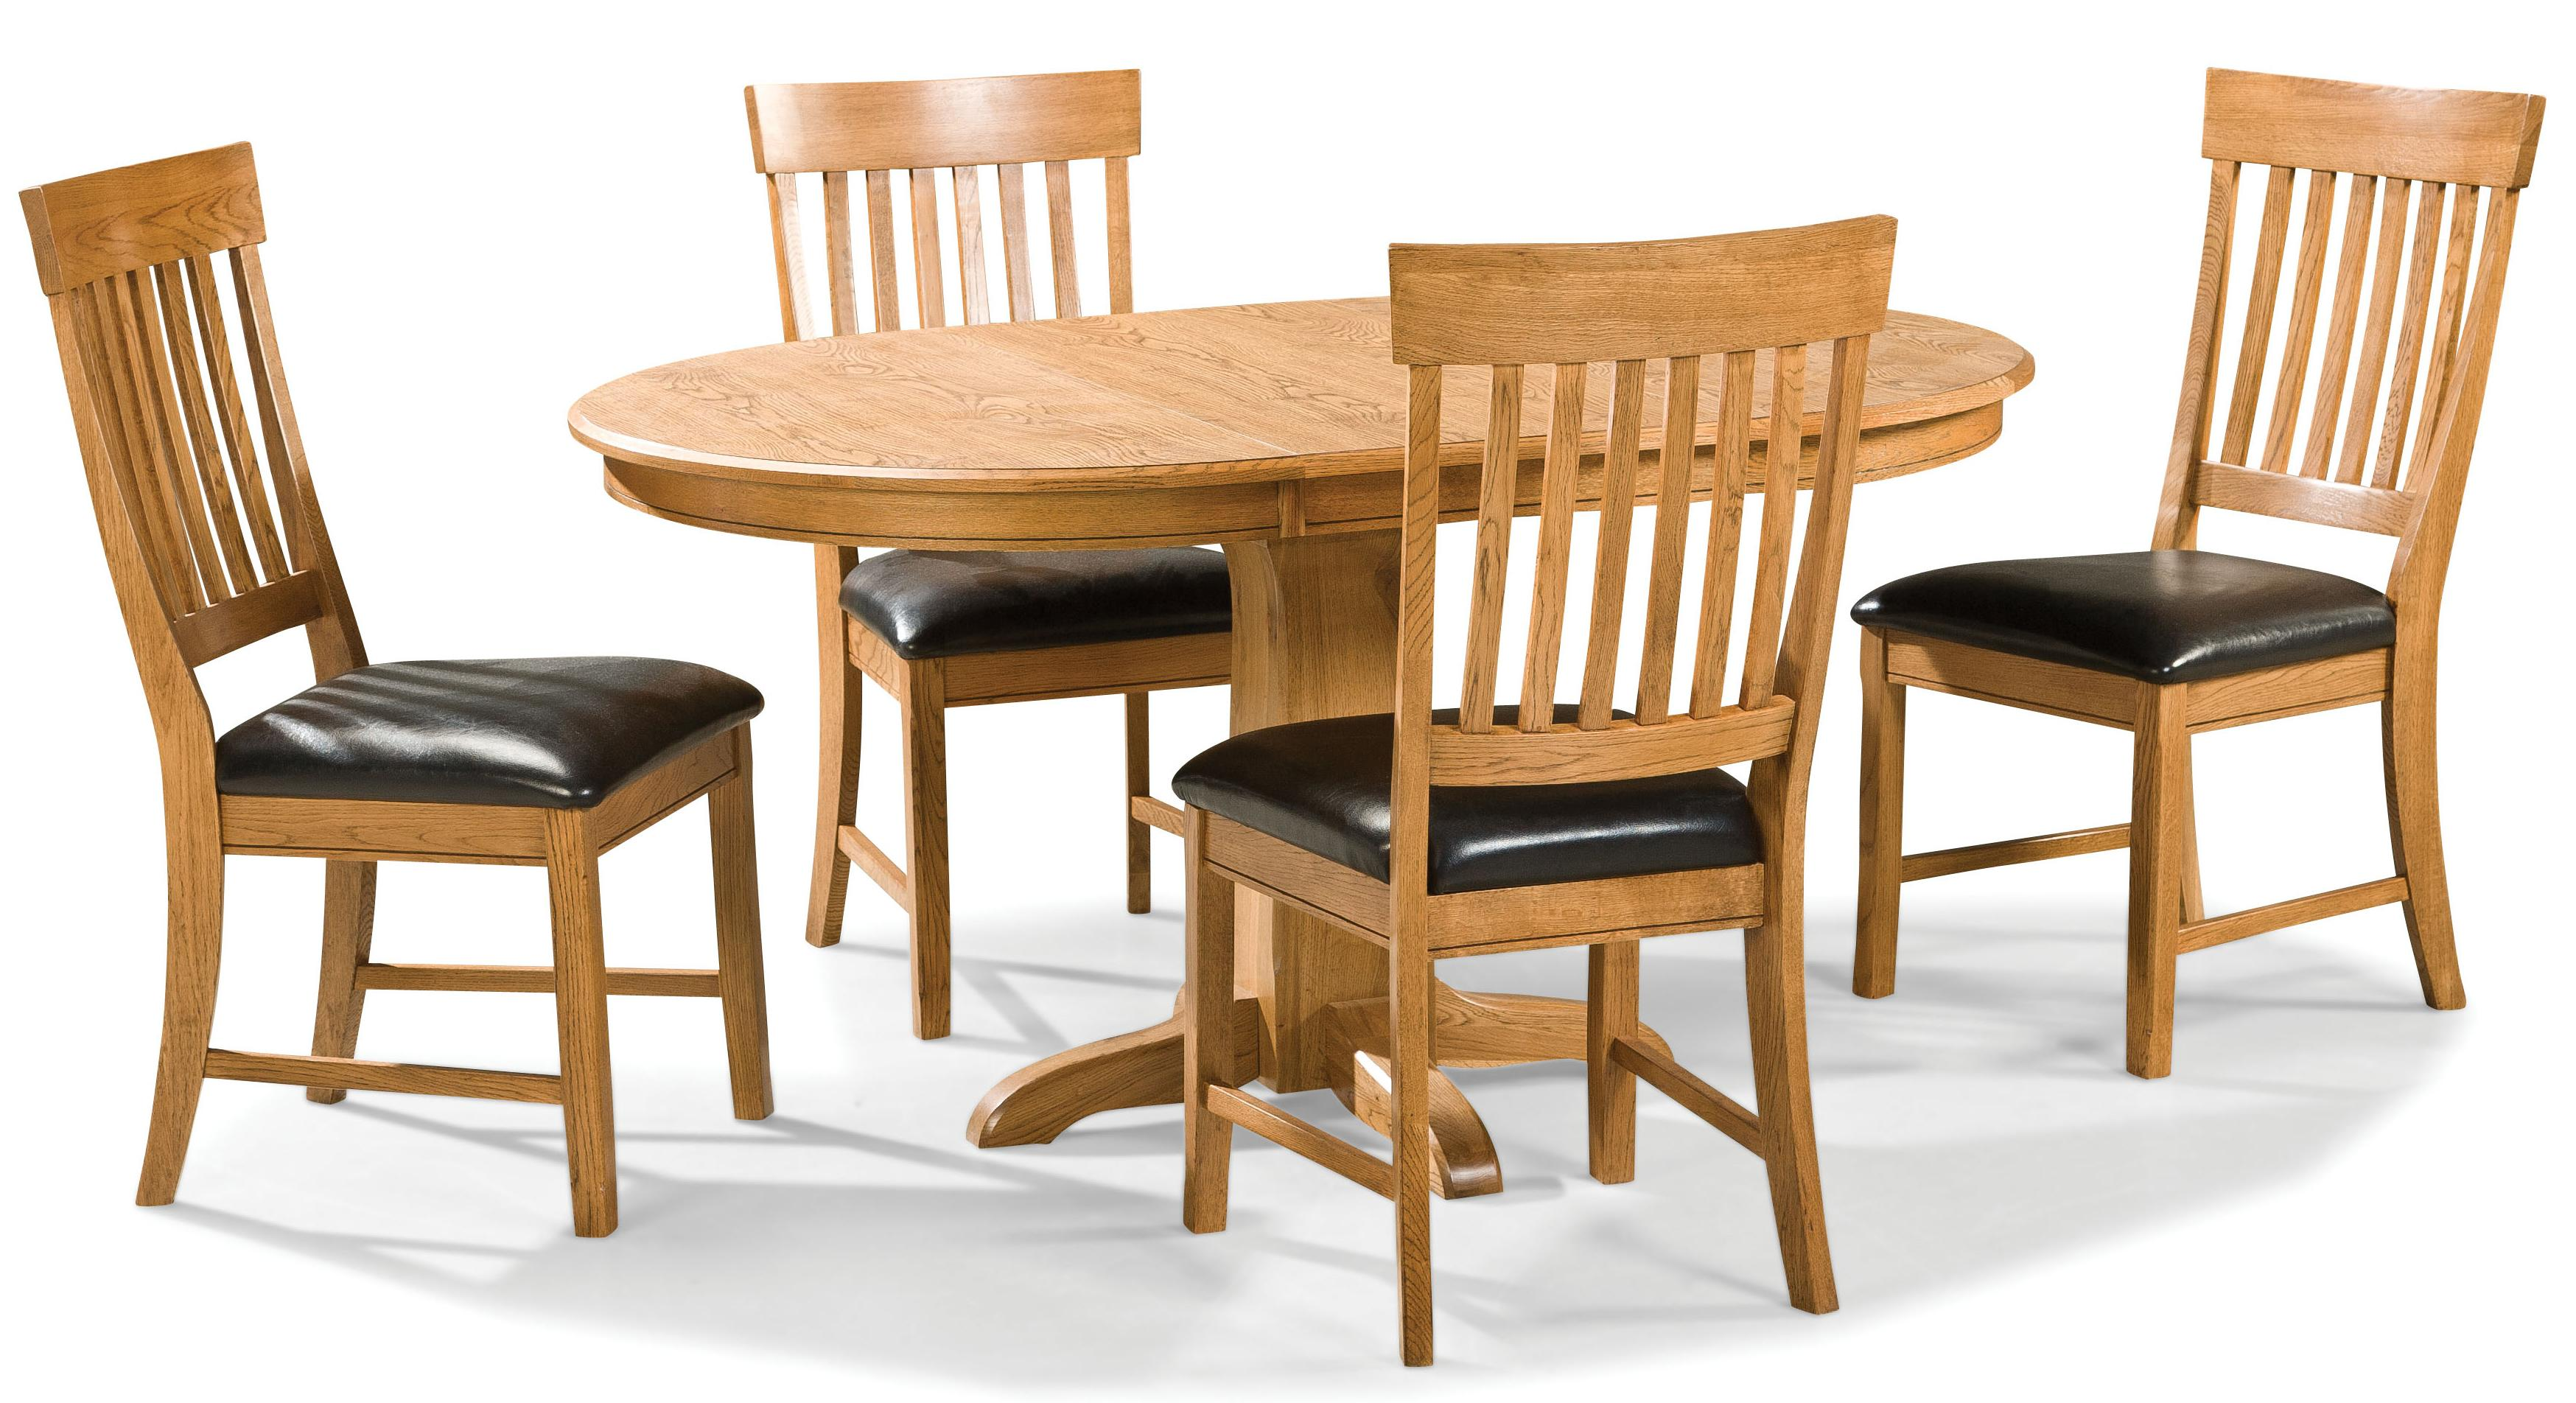 Family Dining 5 Piece Dining Set by Intercon at Dinette Depot